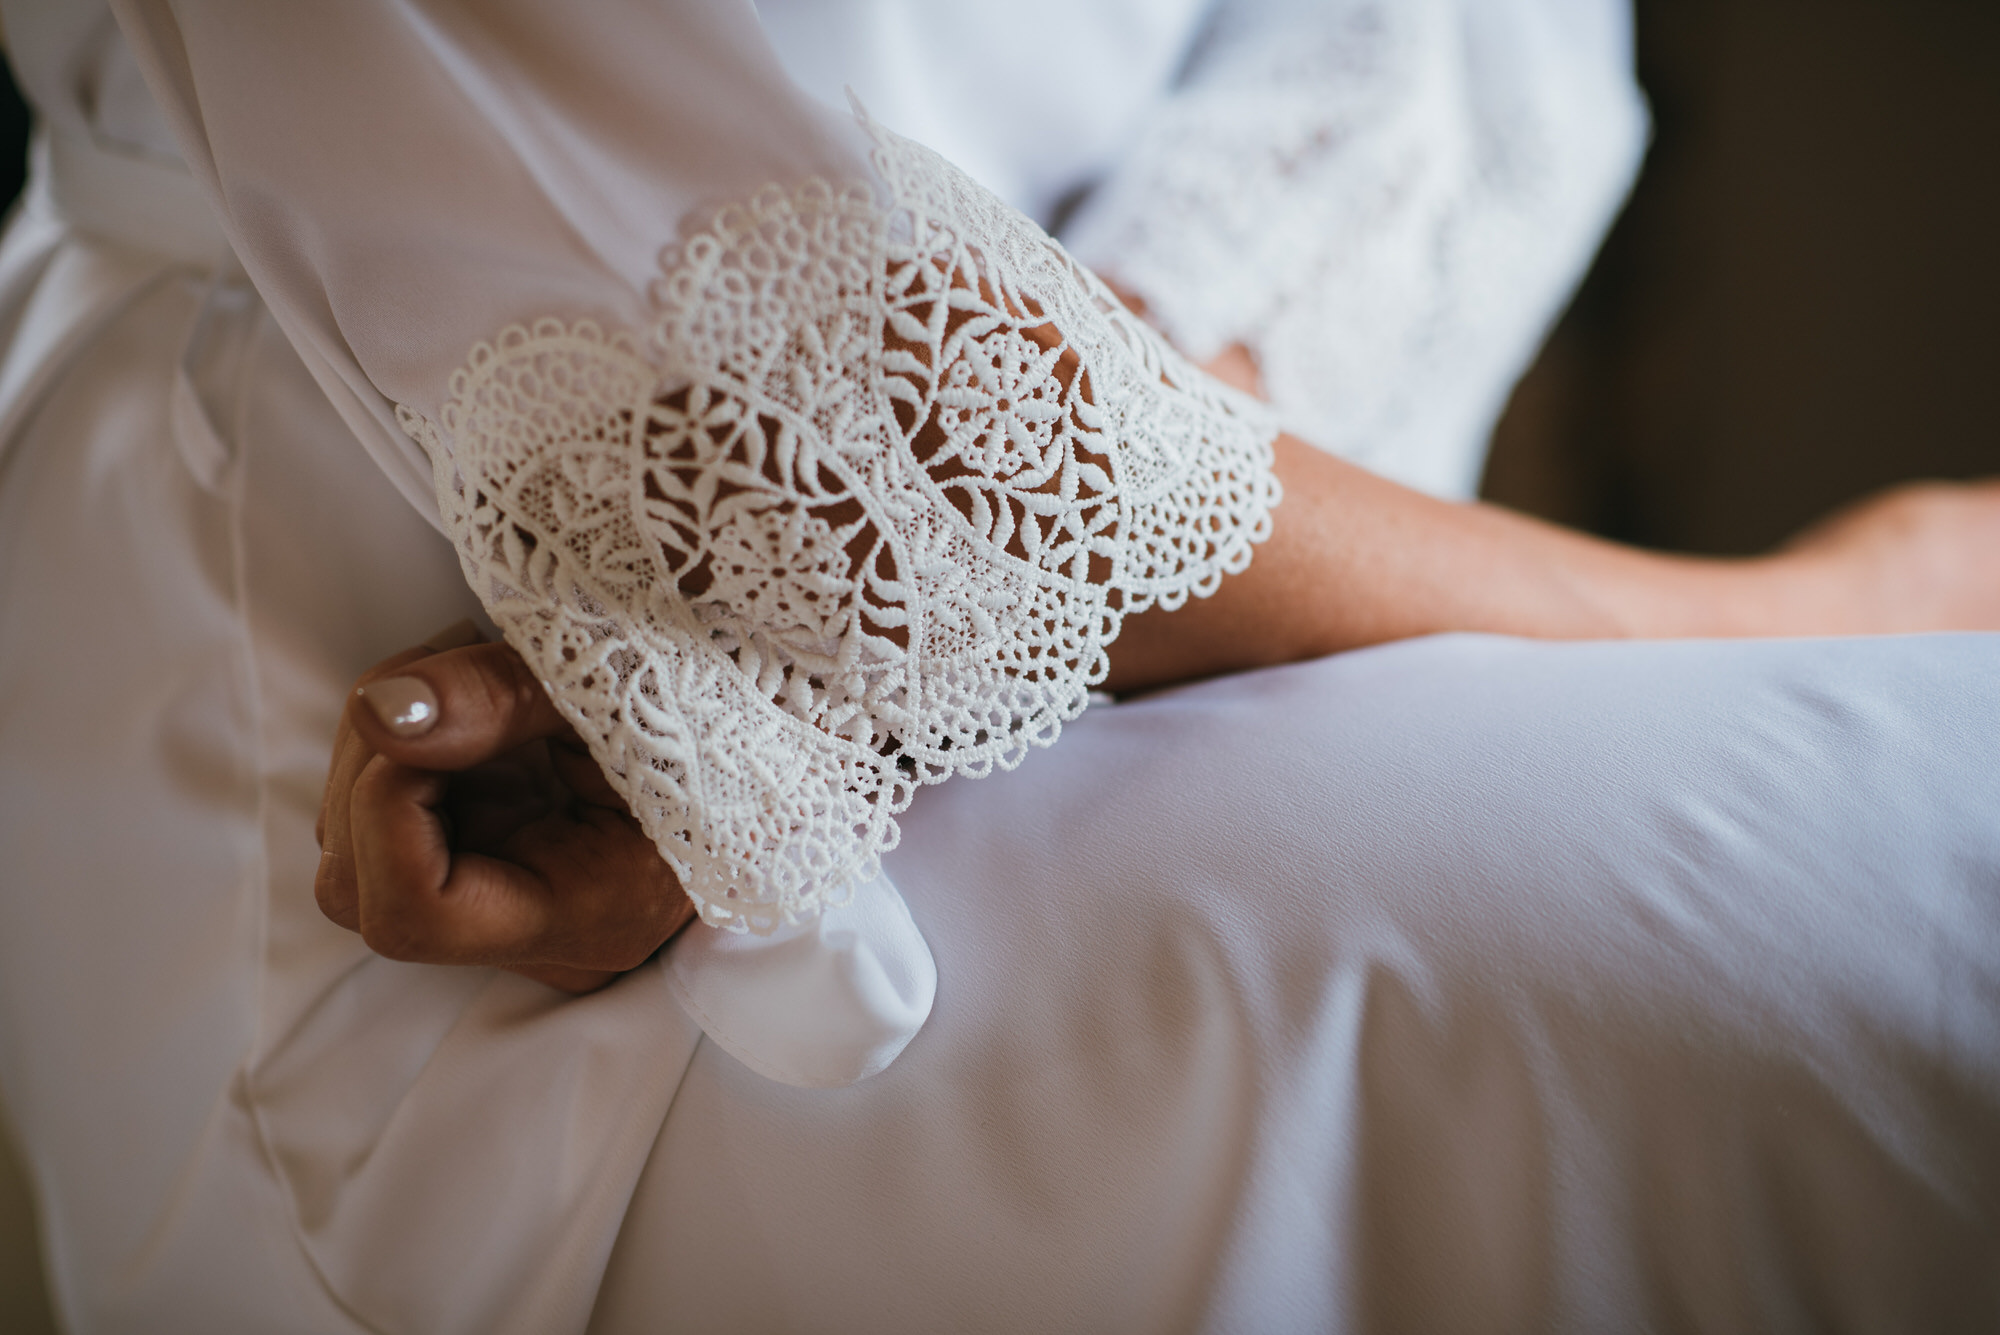 Lace detail on gown